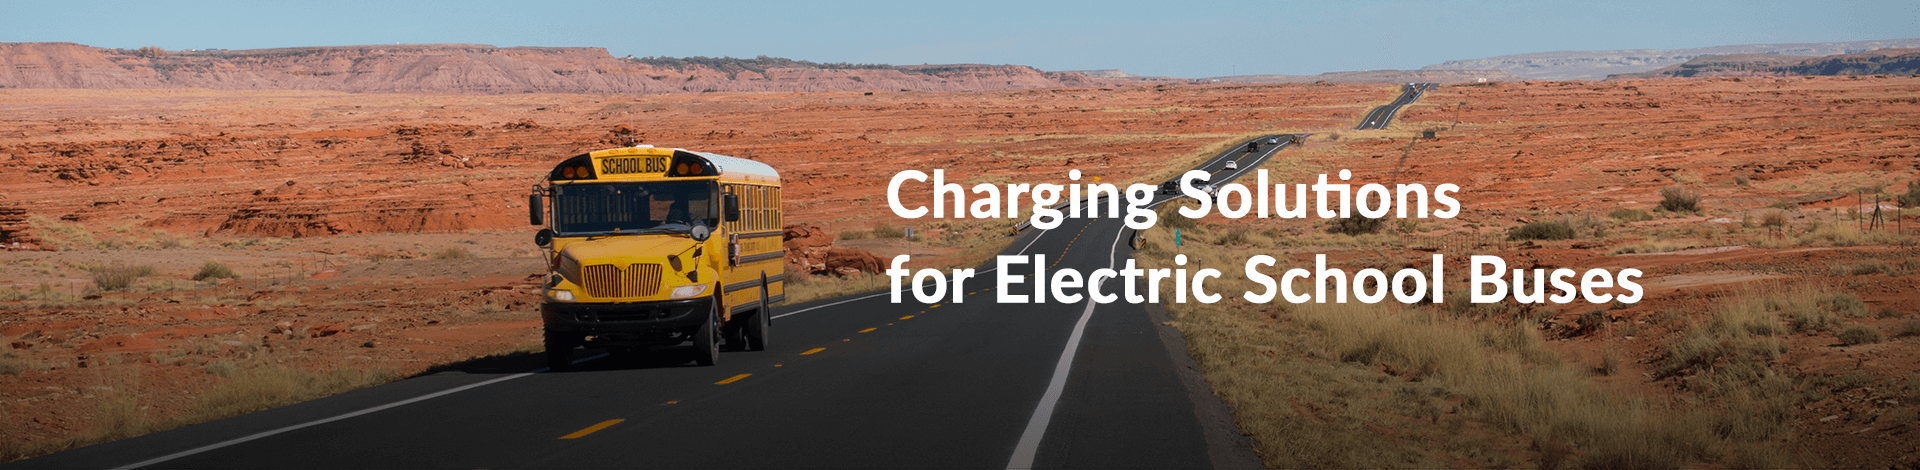 Charging solutions for school bus fleets